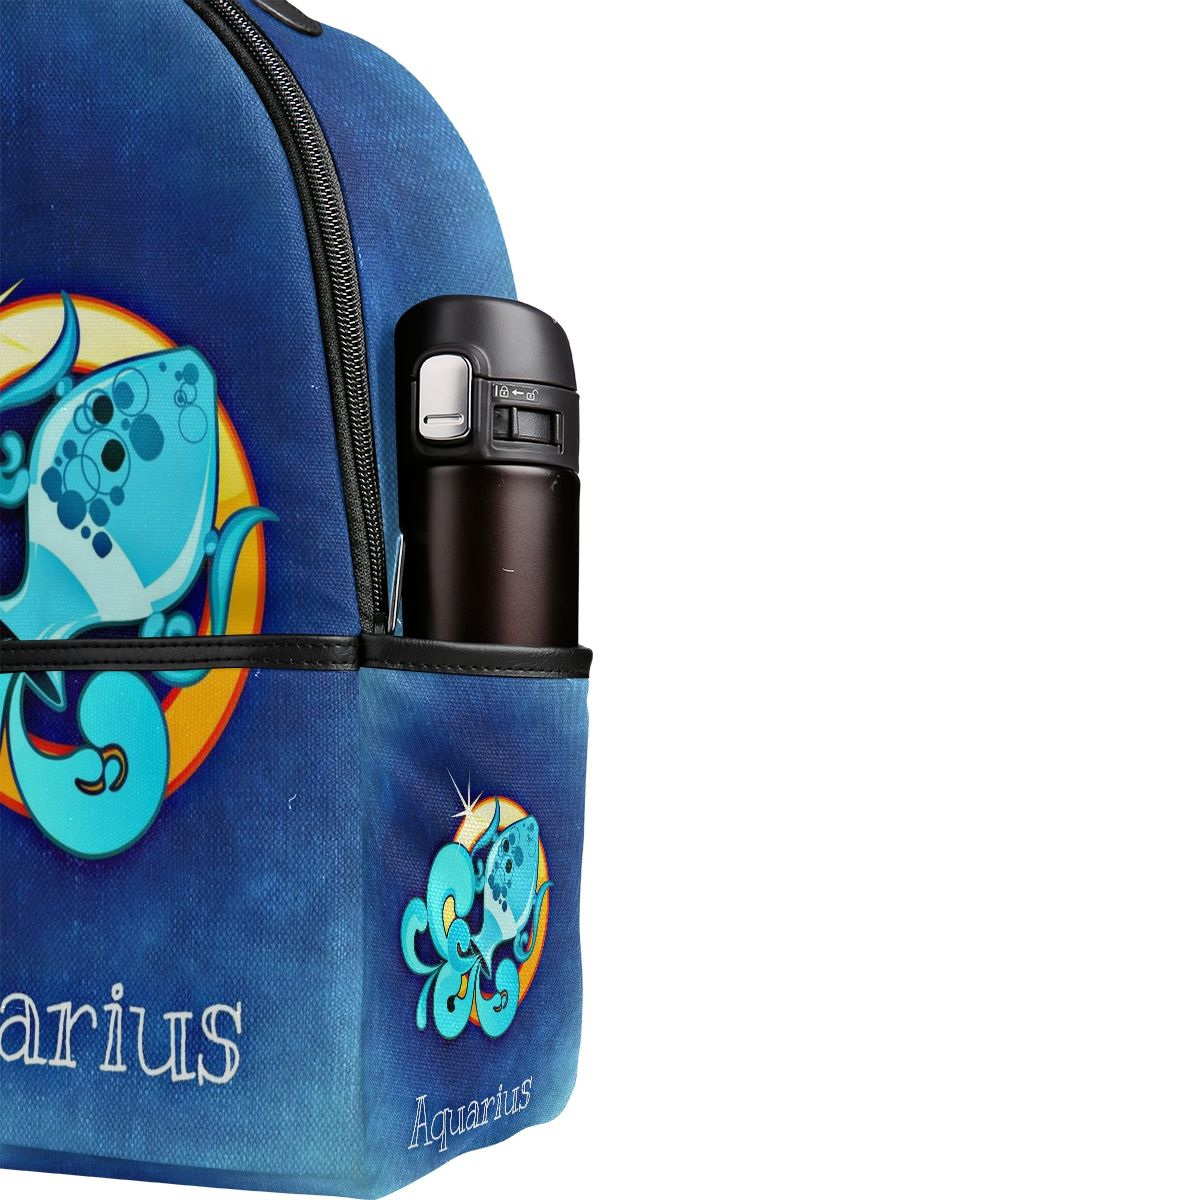 Bags for high school students - Aquarius Funny Printing Canvas Backpack Junior High School Students Schoolbag Laptop Bag Back Pack Girls Boys Gift Mochila In Backpacks From Luggage Bags